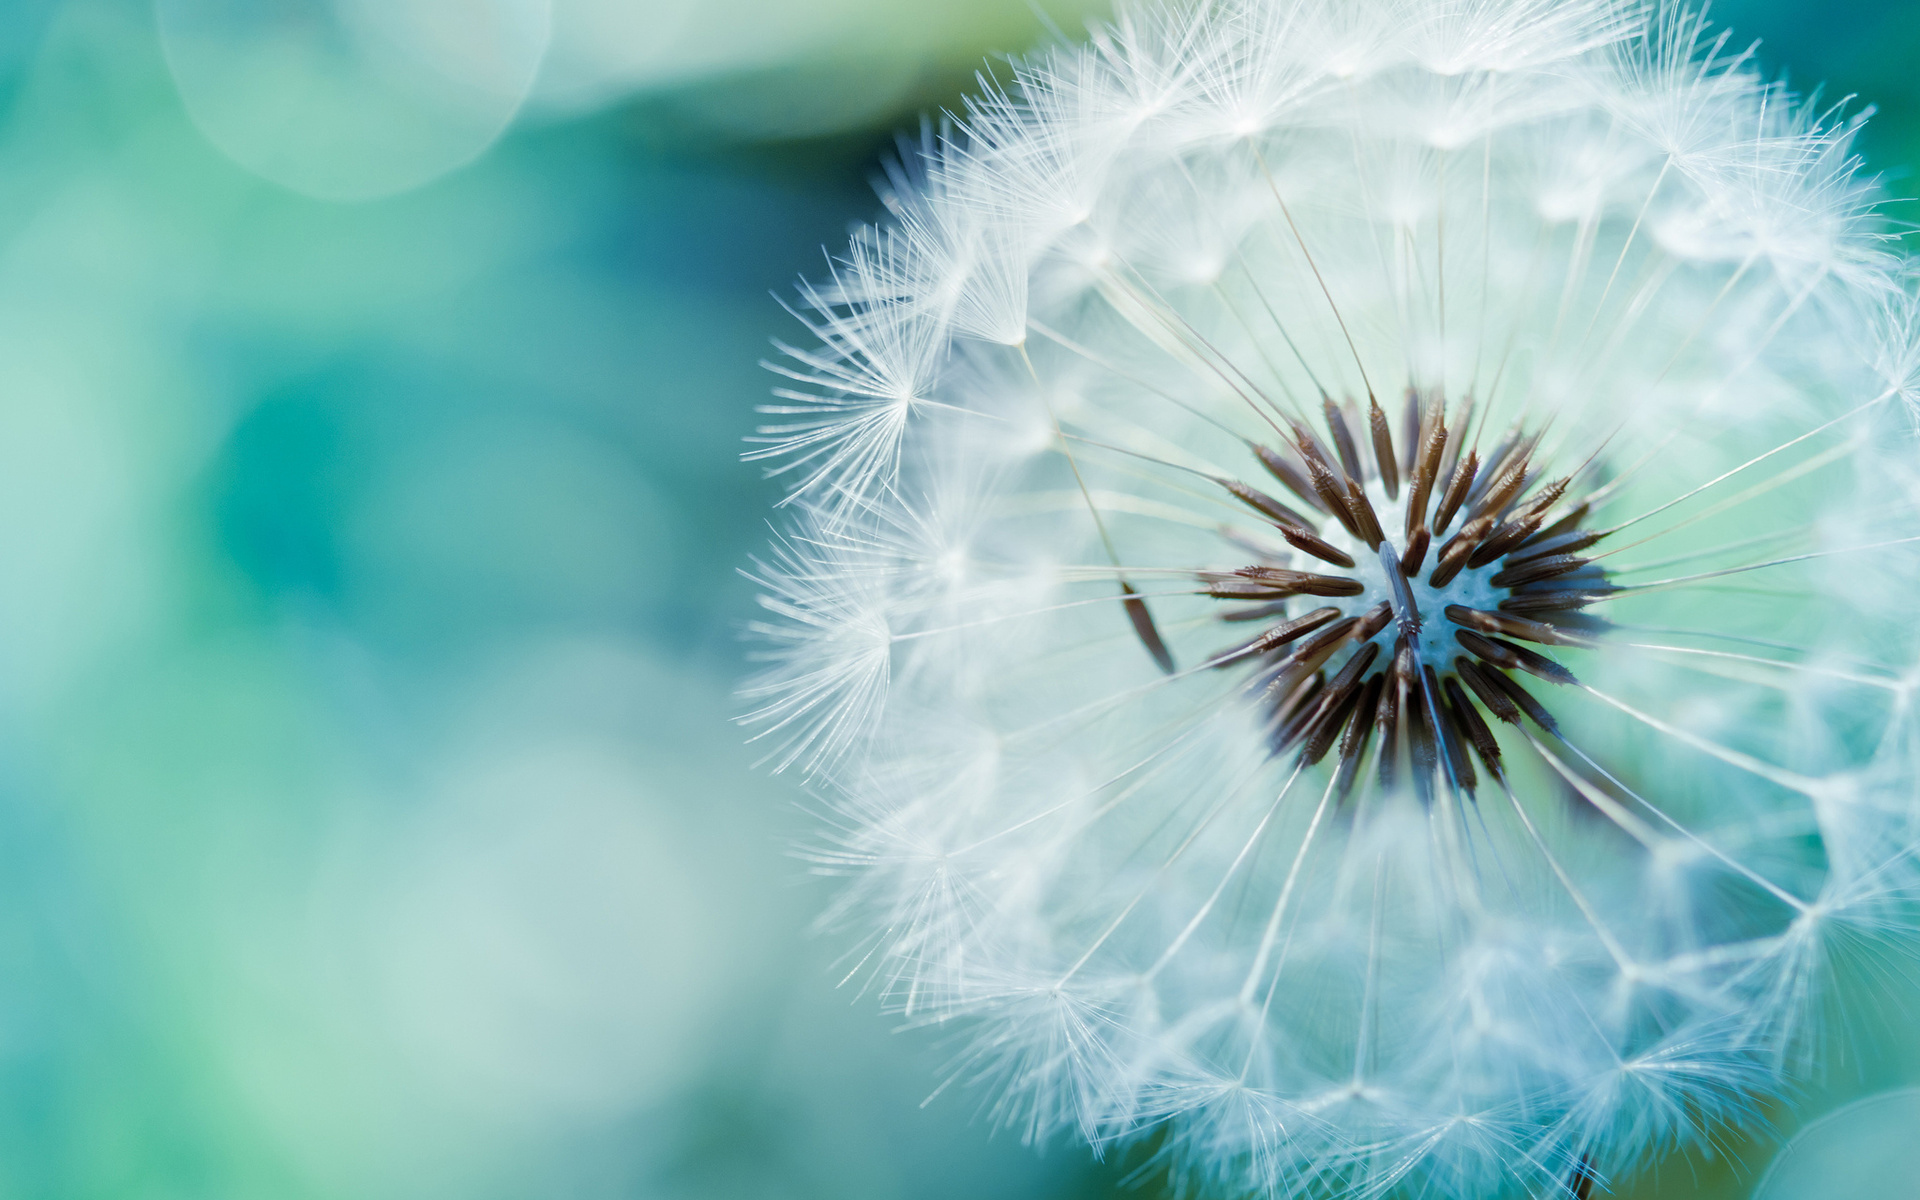 Dandelion Flower Wallpapers HD Wallpapers 1920x1200